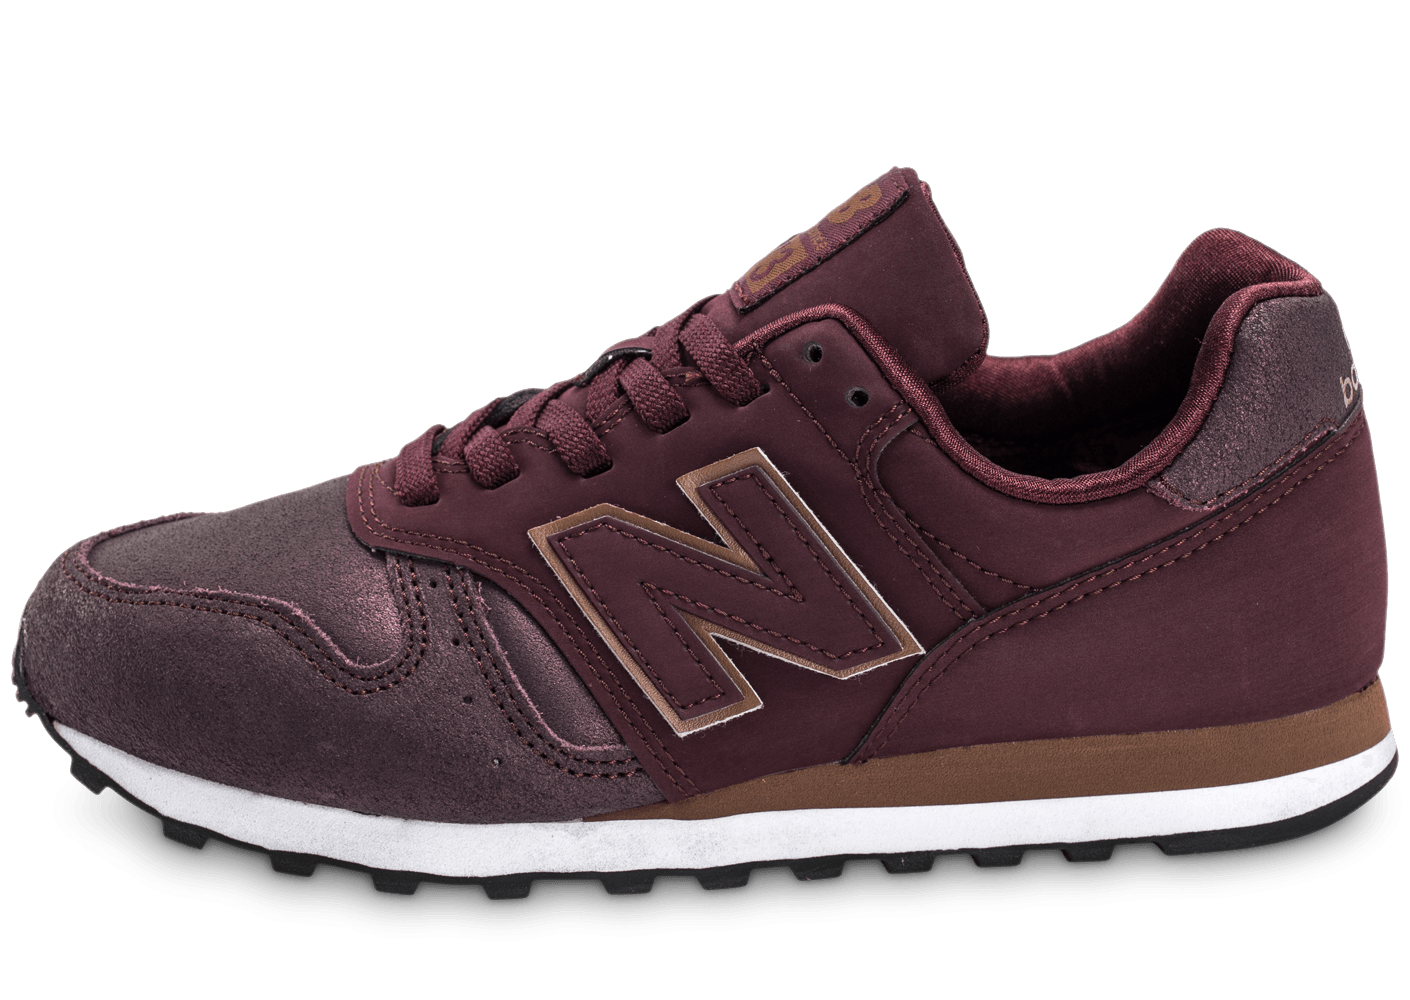 new balance 373 wl 373 pg bordeaux chaussures chaussures chausport. Black Bedroom Furniture Sets. Home Design Ideas